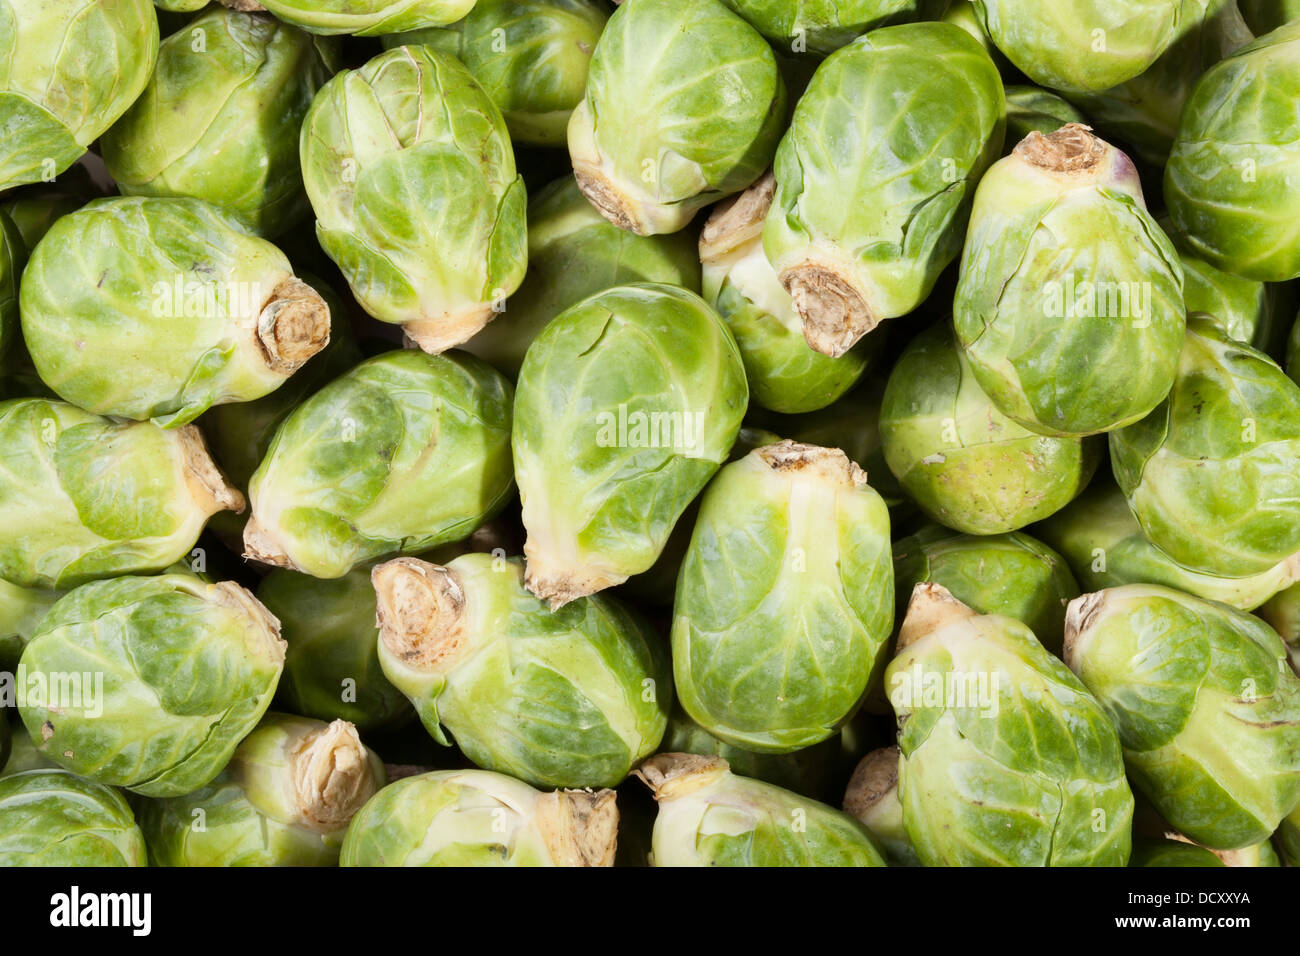 brussels sprouts many closeup background - Stock Image